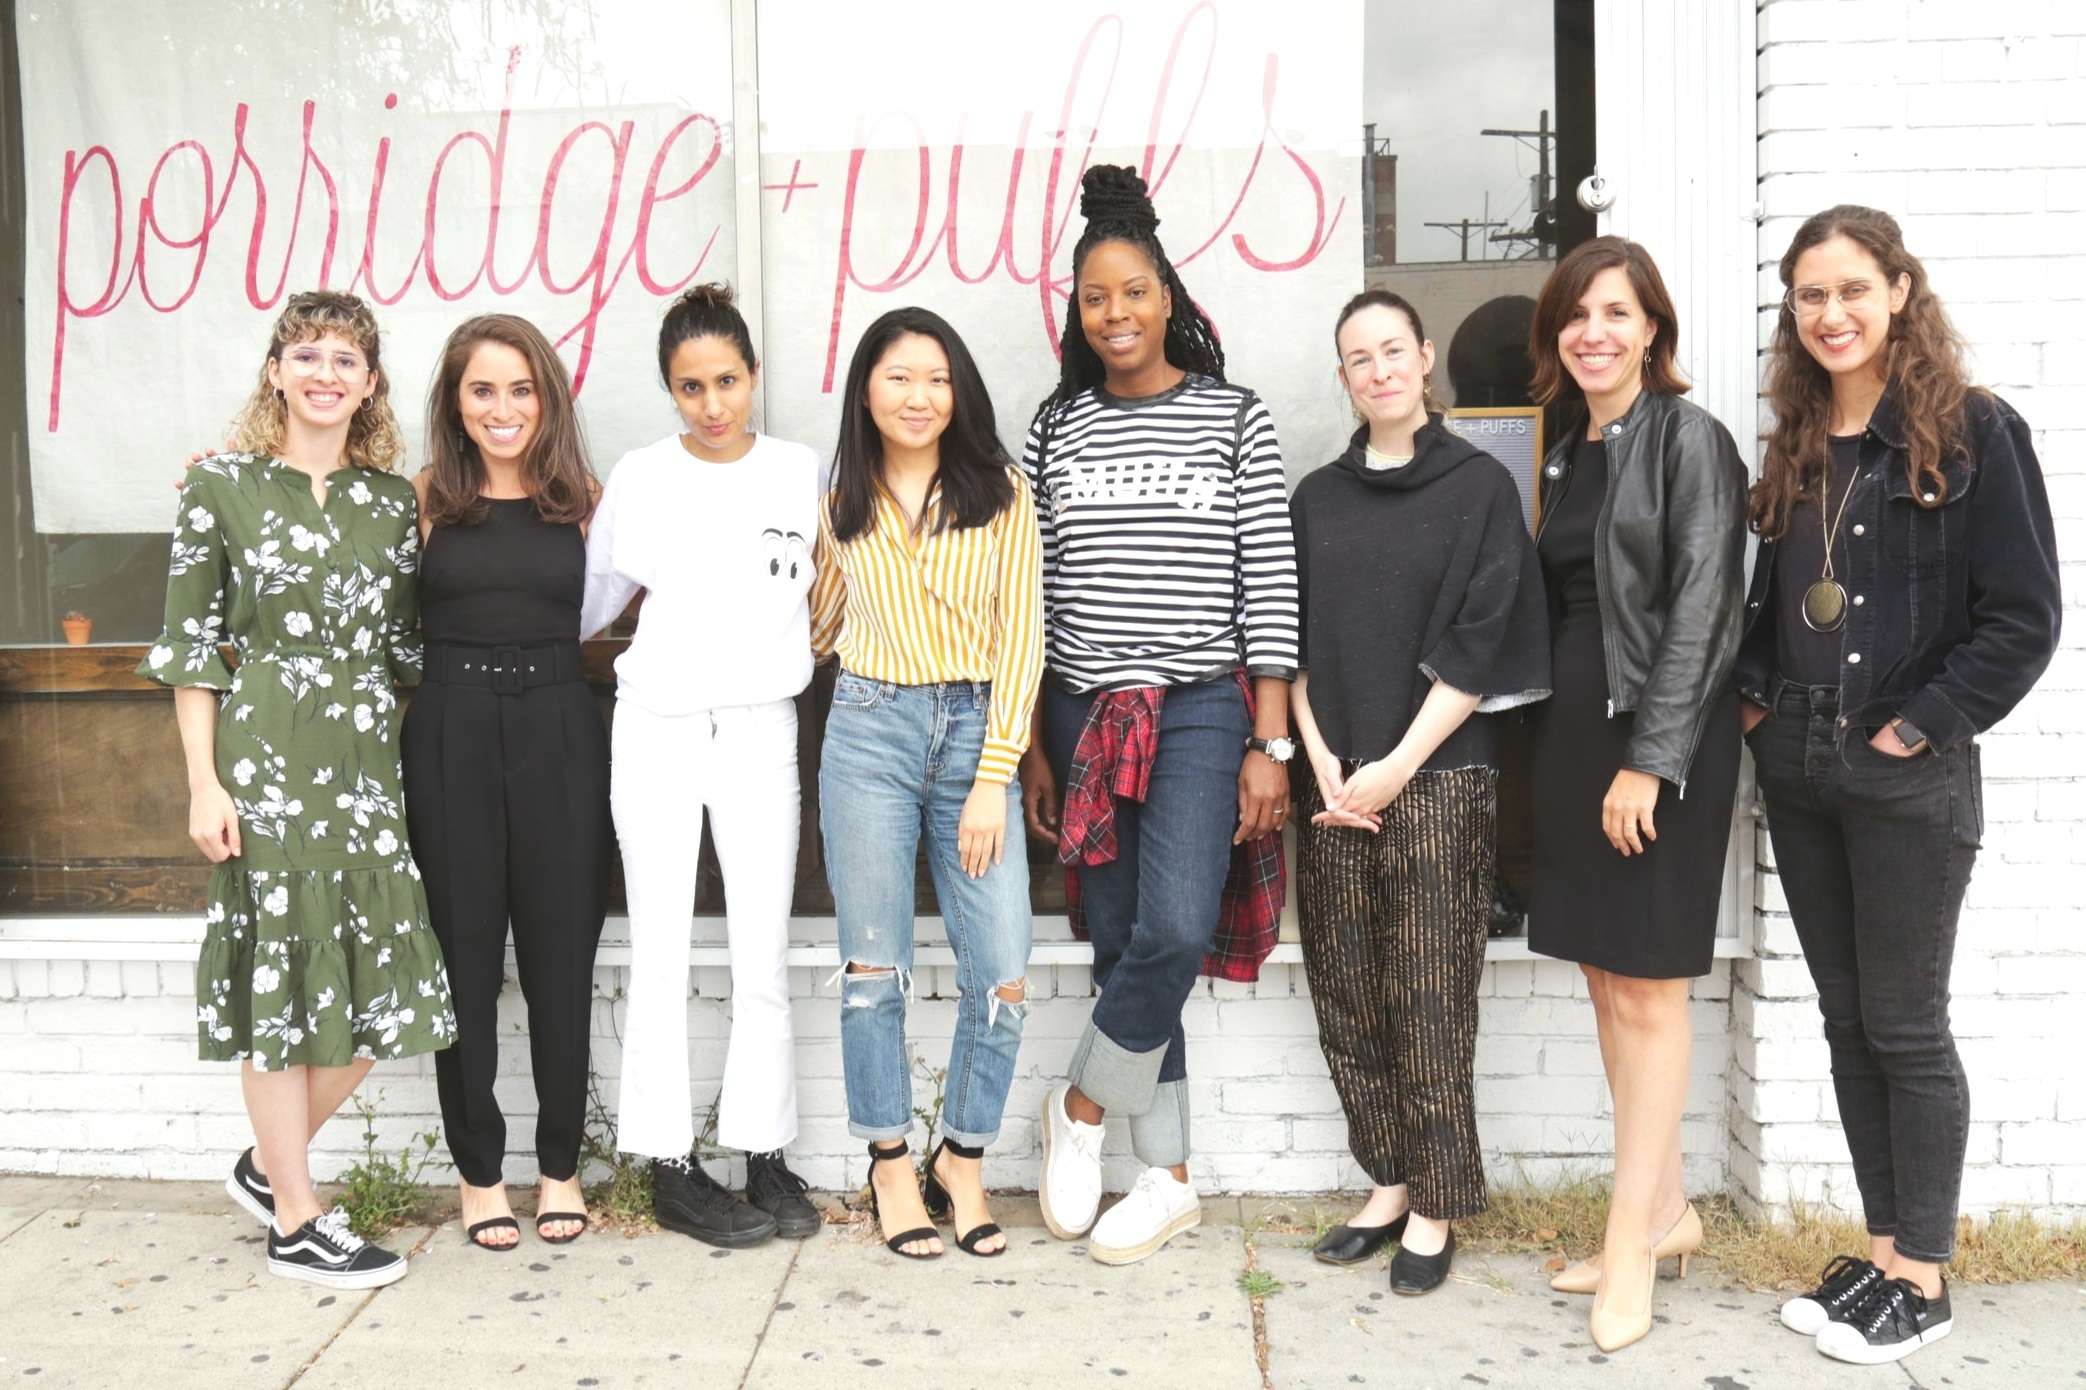 From left to right: Aliza Arabanal (Assistant Editor of Healthyish/ Bon Appétit ), Hallie Applebaum (Founder, Future of Women), Imelda Walavalkar (CEO and co-founder of  Pure Beauty ), Christine Yi (co-founder of  Potli ), Chef Andrea Drummer, Anja Charbonneau (Founder of   Broccoli  ), Elizabeth Ashford (Senior Director of Corporate Communications at Eaze), Amanda Shapiro (Editor of Healthyish/ Bon Appétit ).